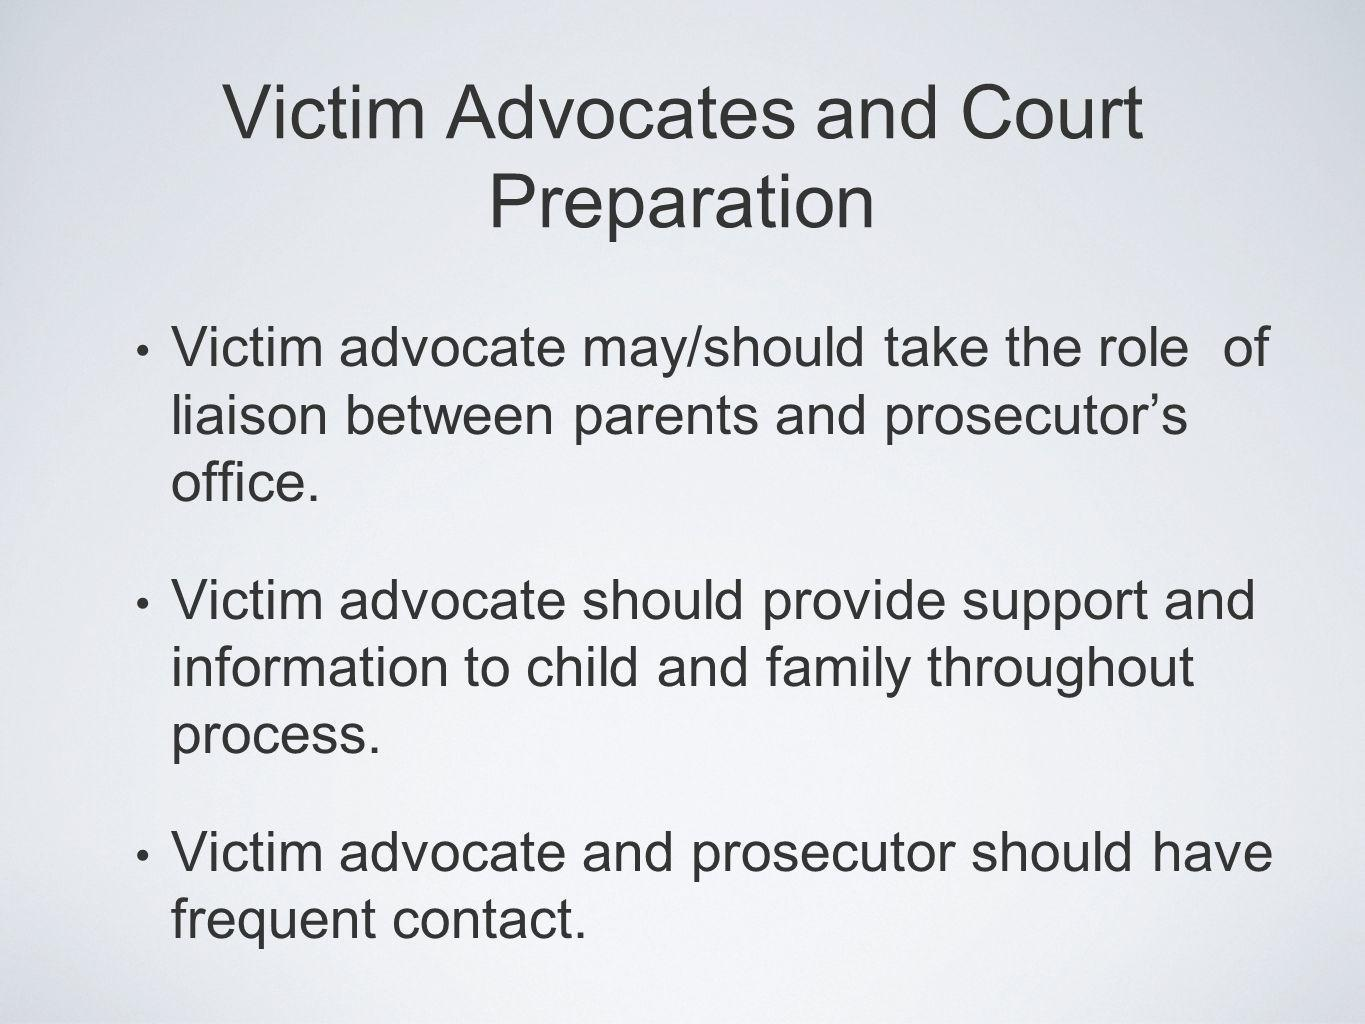 Victim advocate may/should take the role of liaison between parents and prosecutors office. Victim advocate should provide support and information to